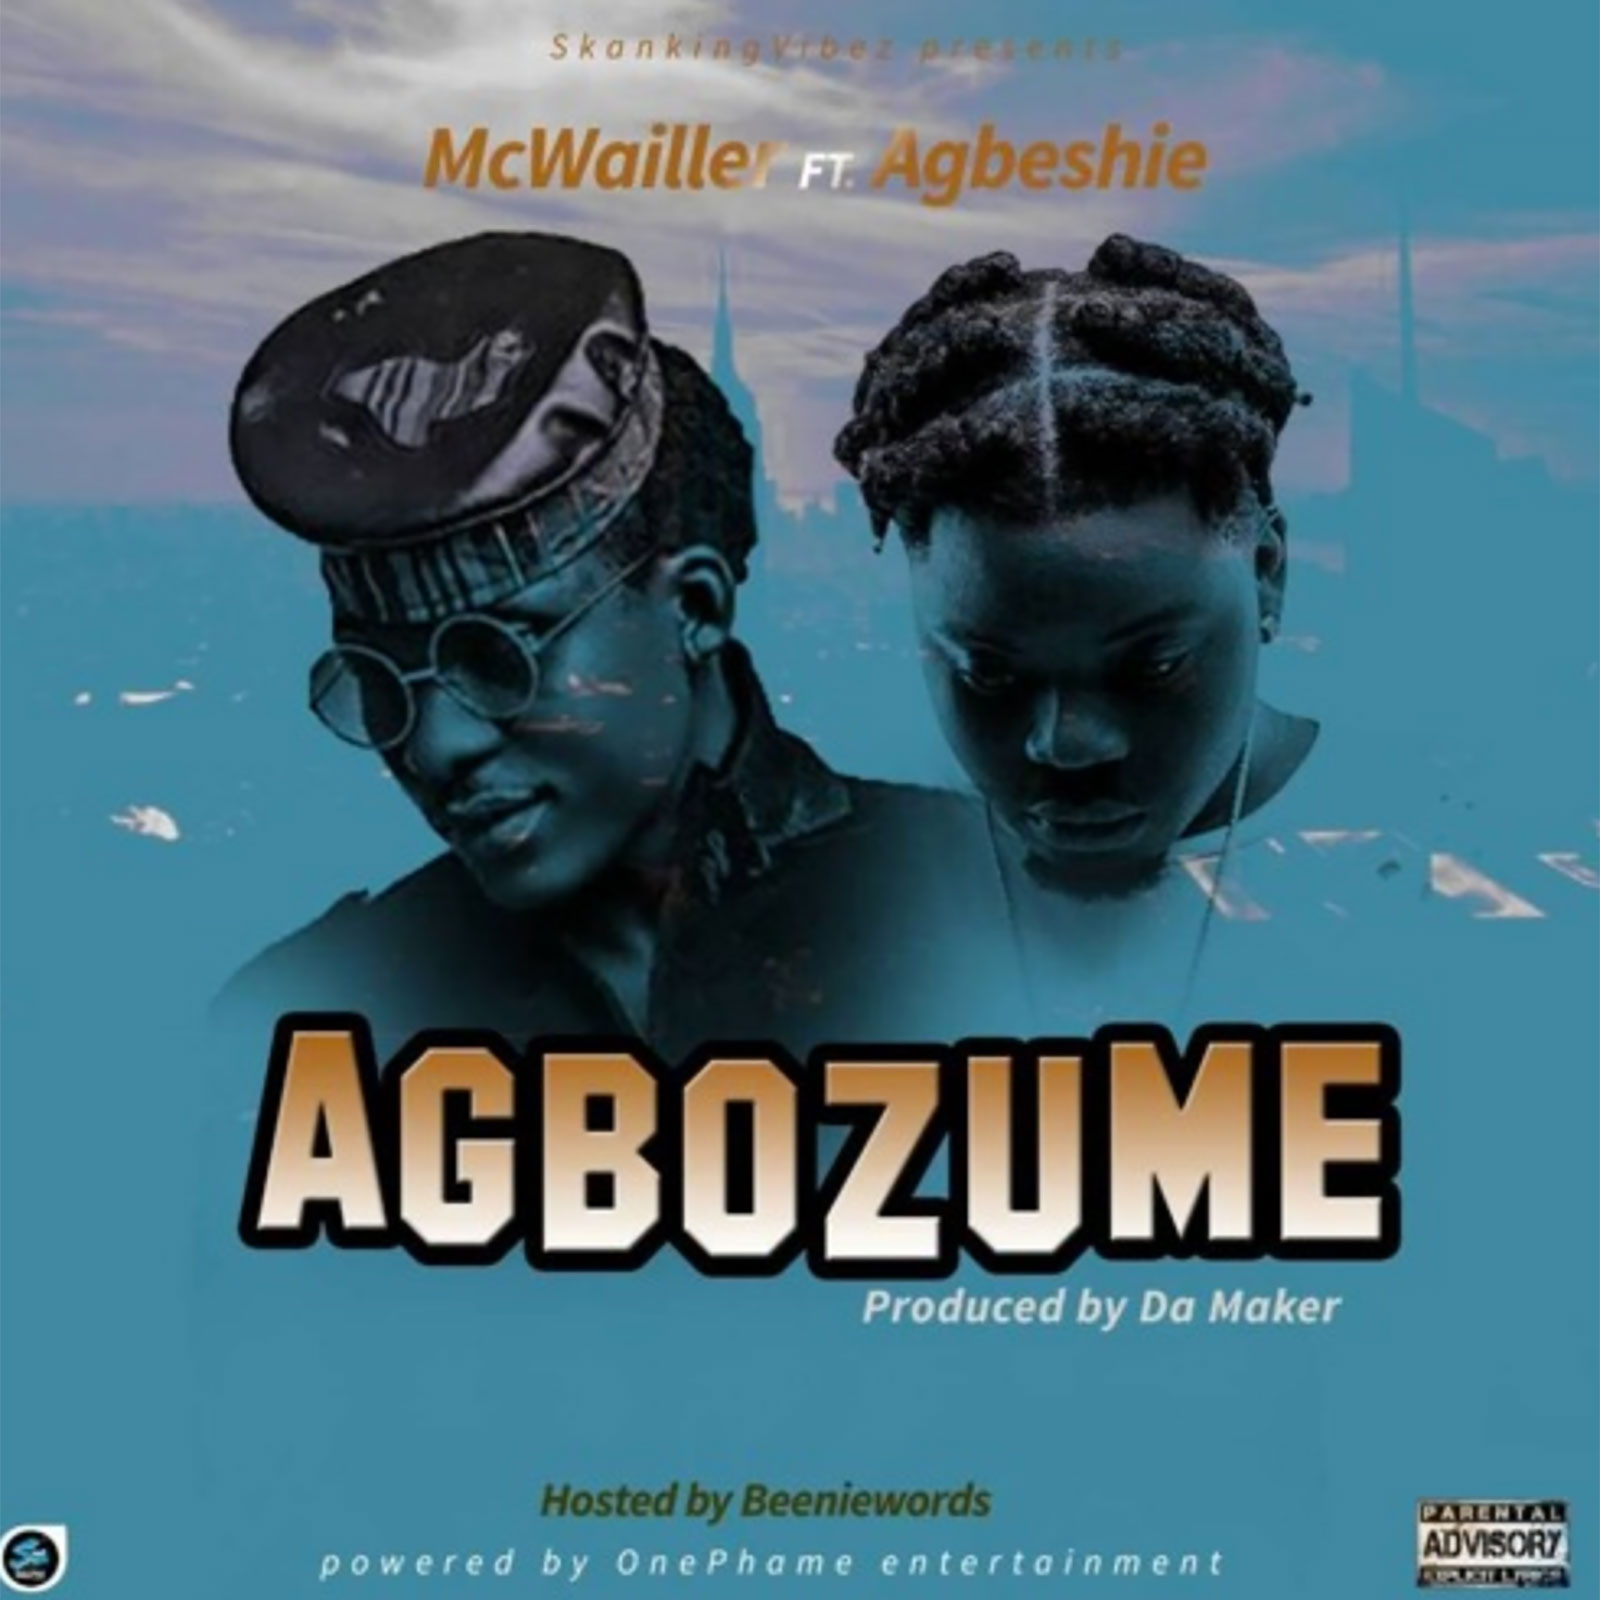 Agbozume by McWailer feat. Agbeshie